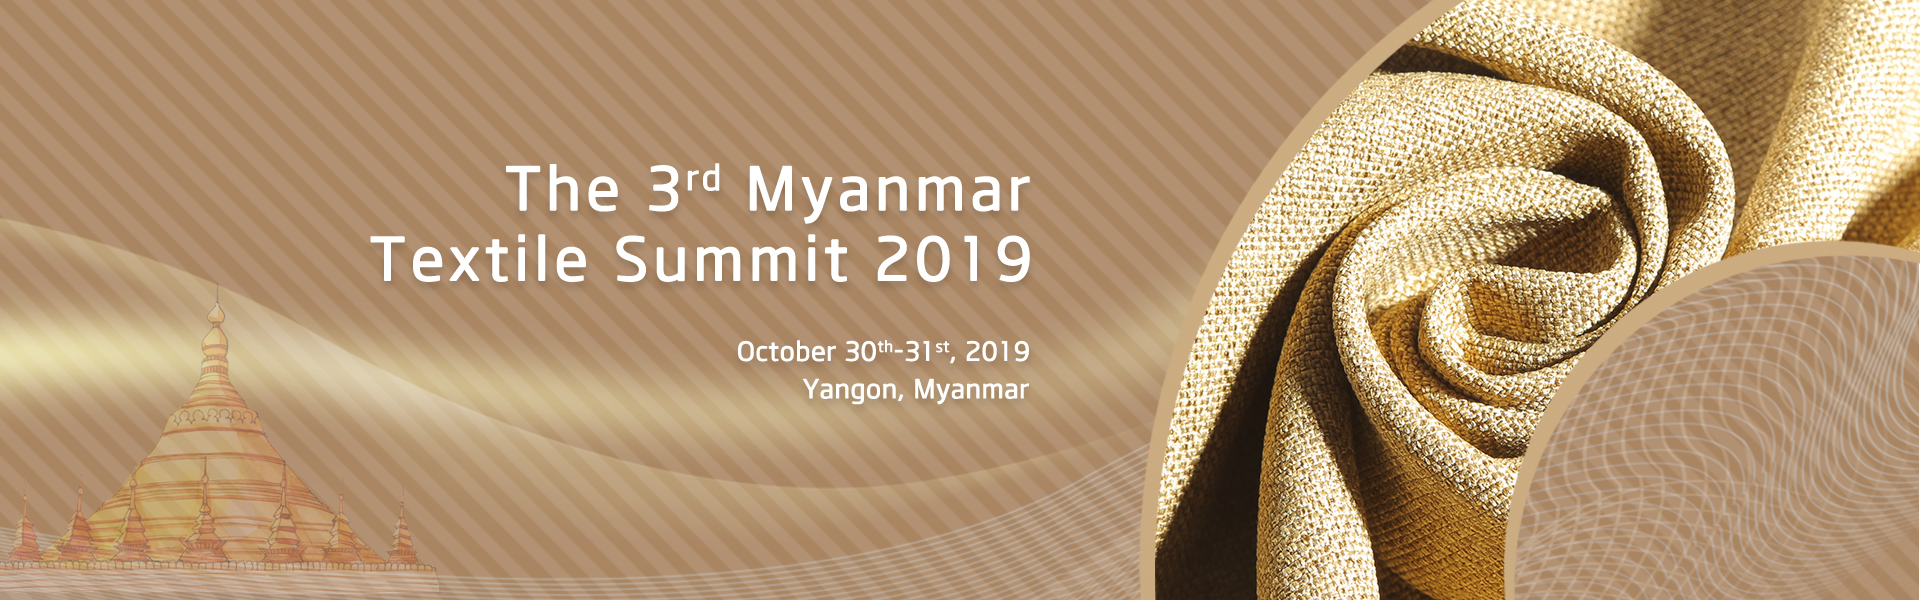 The 3rd Myanmar Textile Summit 2019